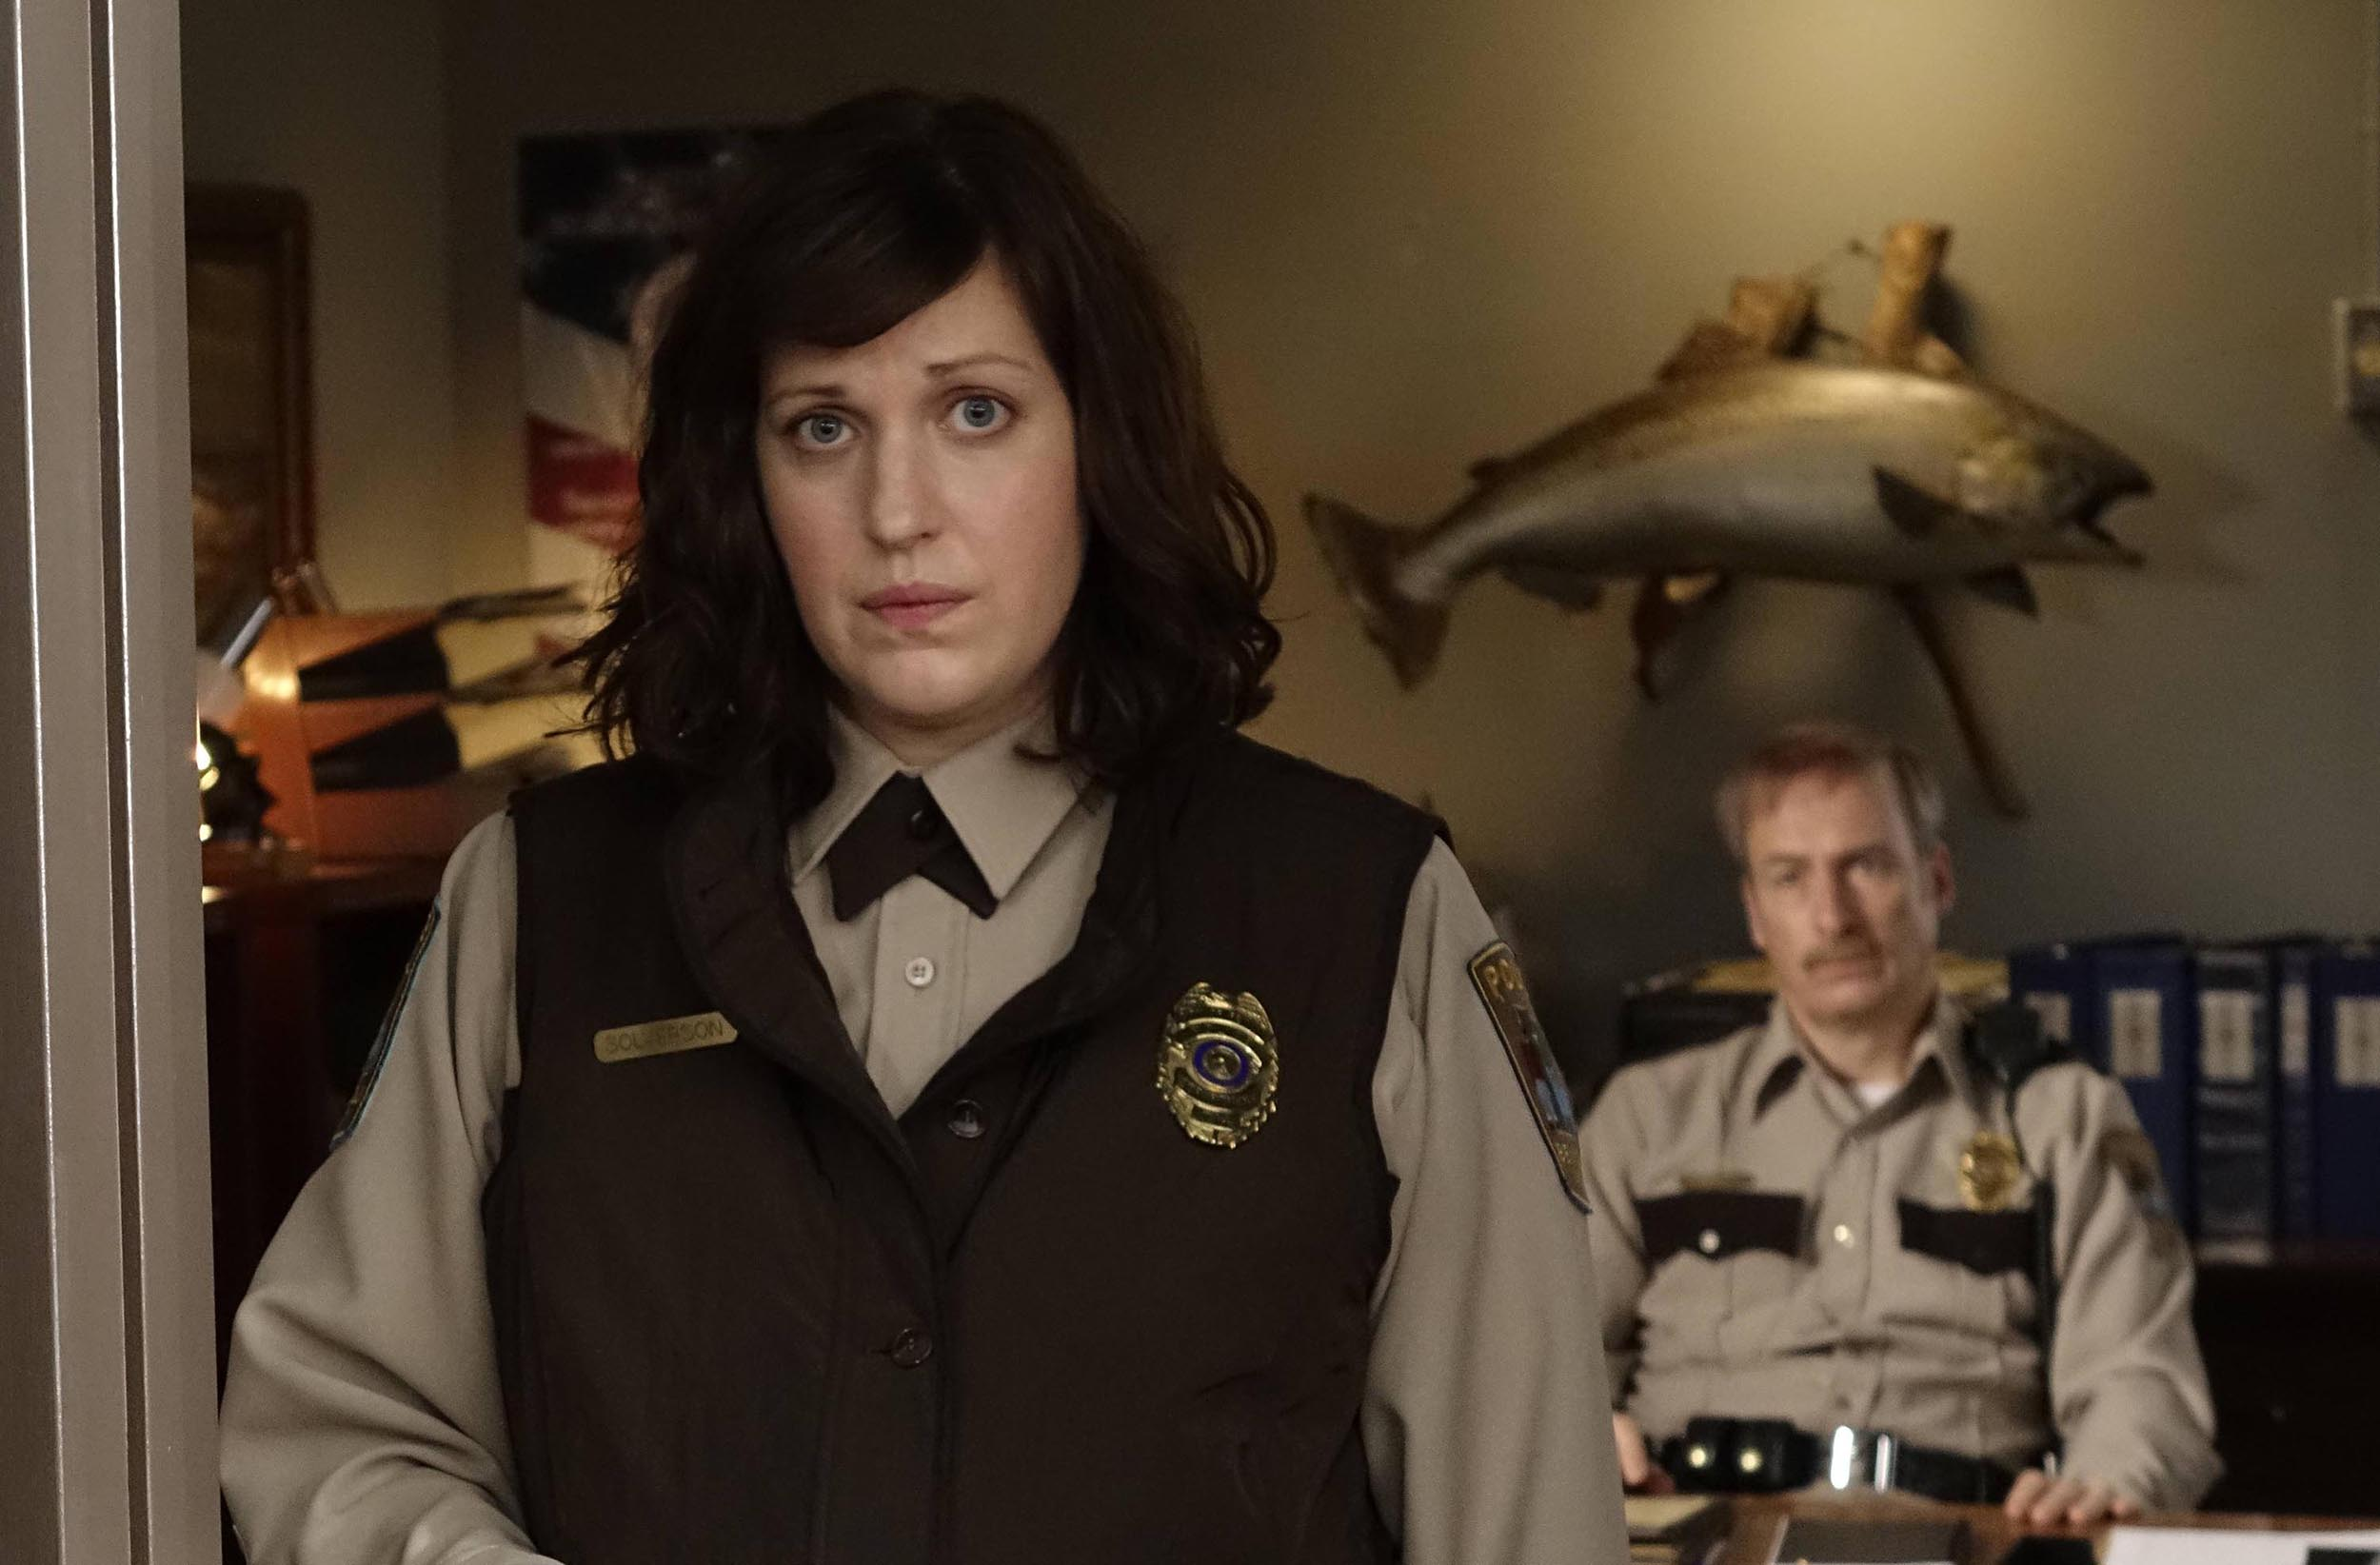 There's going to be a second series of Fargo, apparently – but will Molly be back?